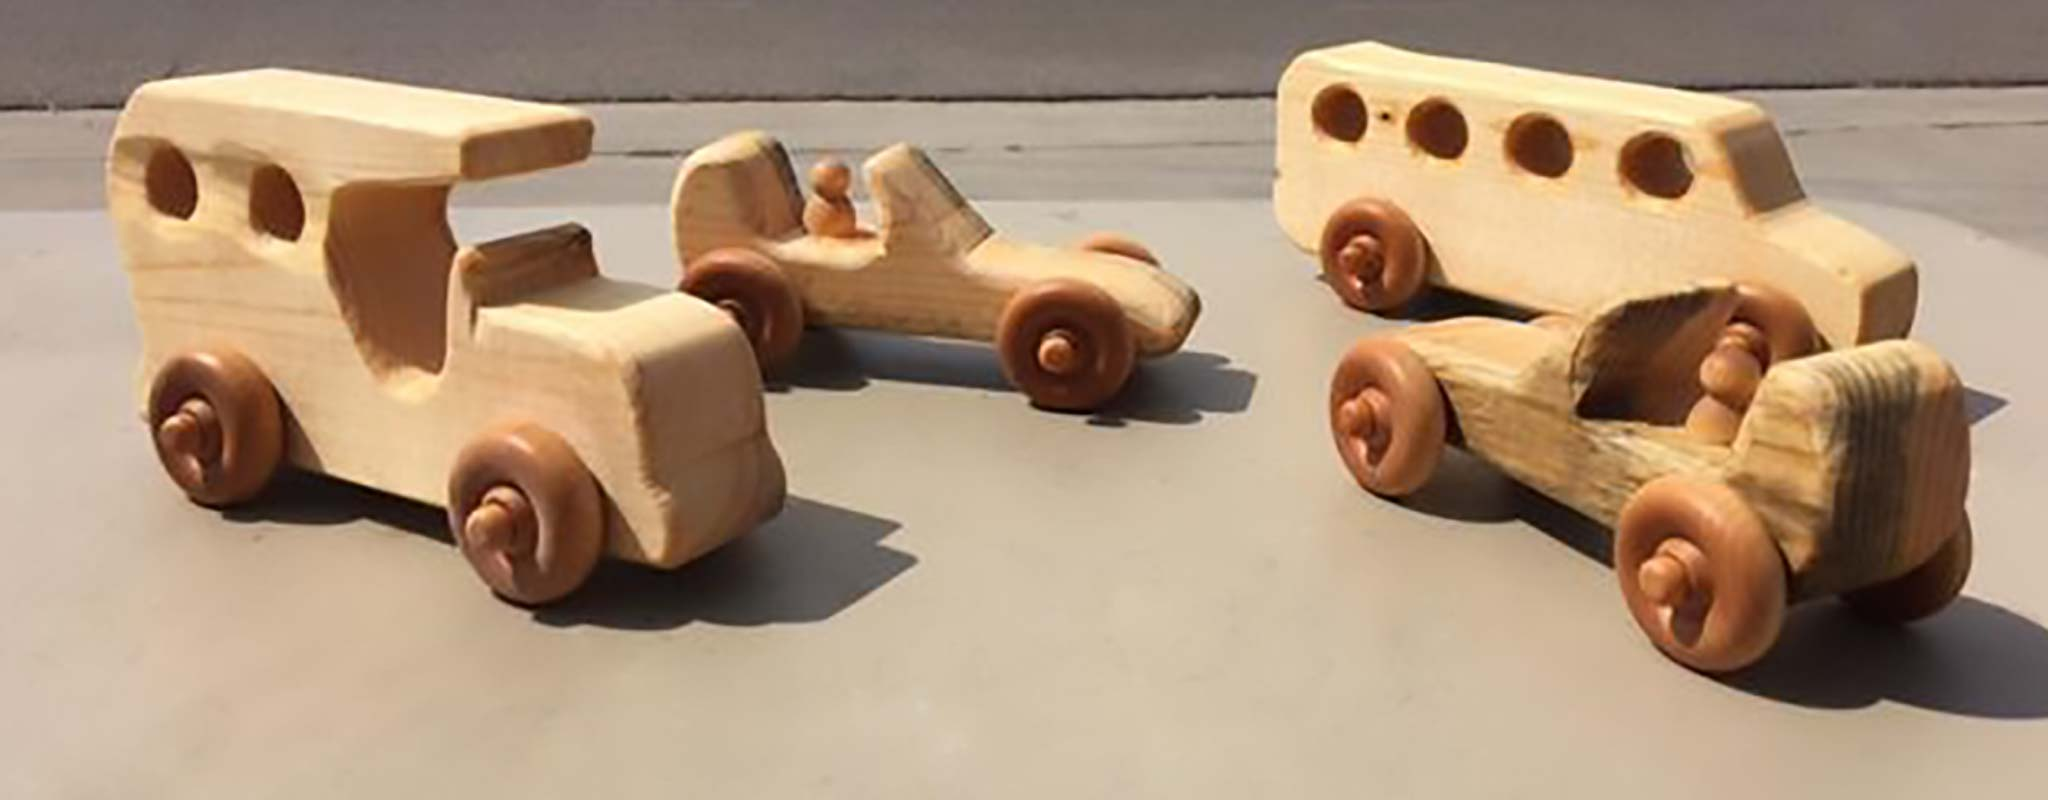 A set of hand carved wood cars.